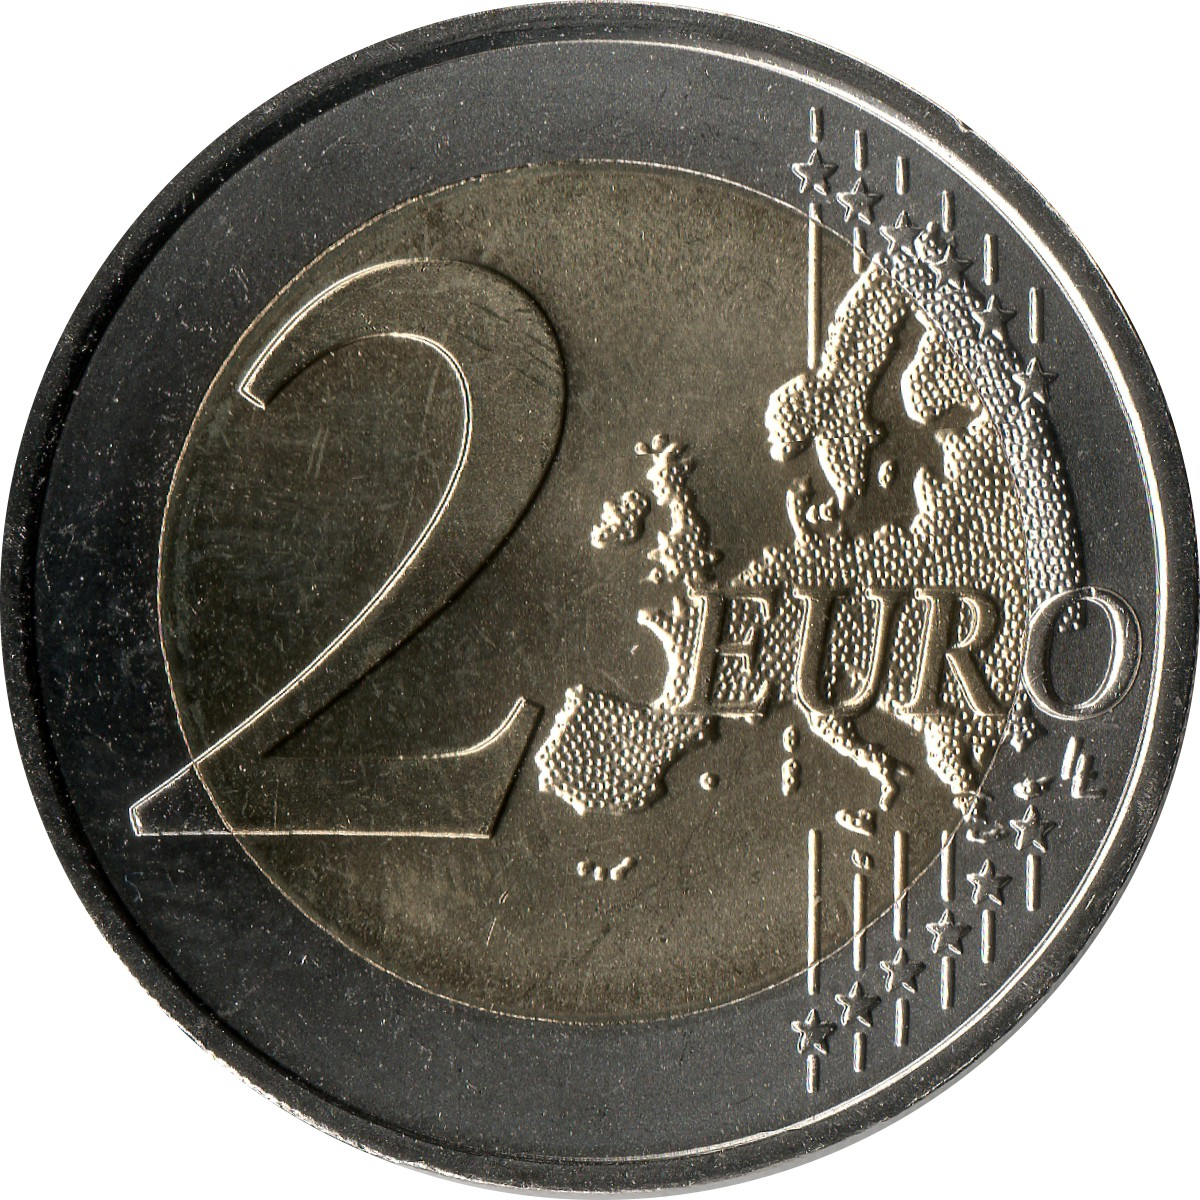 MALTA NEW ISSUE BIMETAL 2 EURO UNC COIN 2014 YEAR 50th ANNI INDEPENDENCE